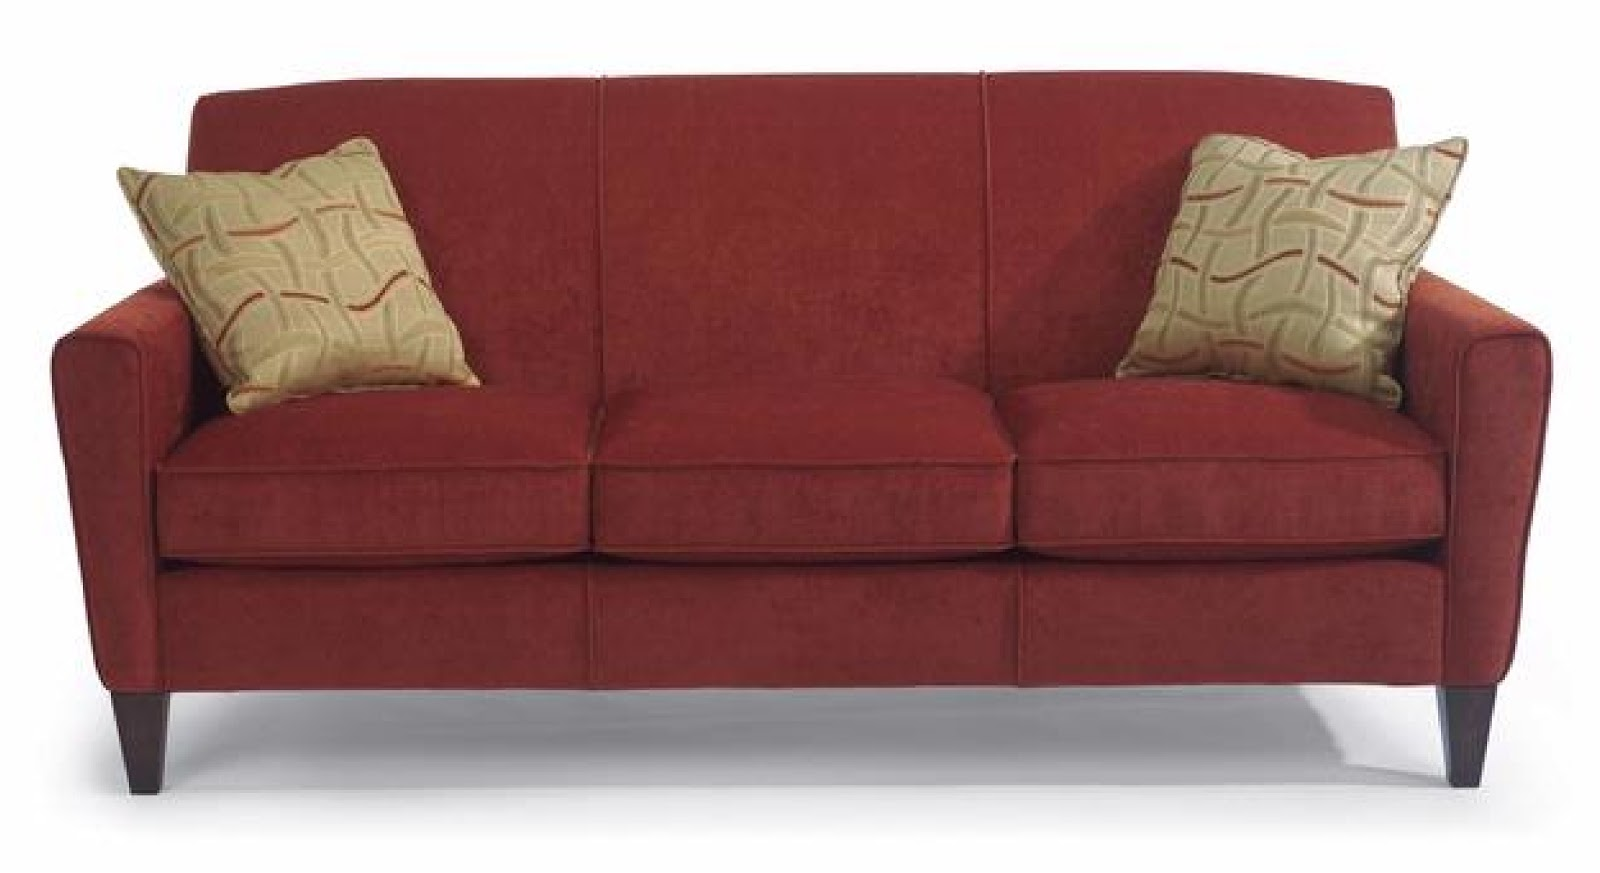 Crate and Barrel Couch | Axis Ii Sofa Review | Crate and Barrel Sectional Reviews